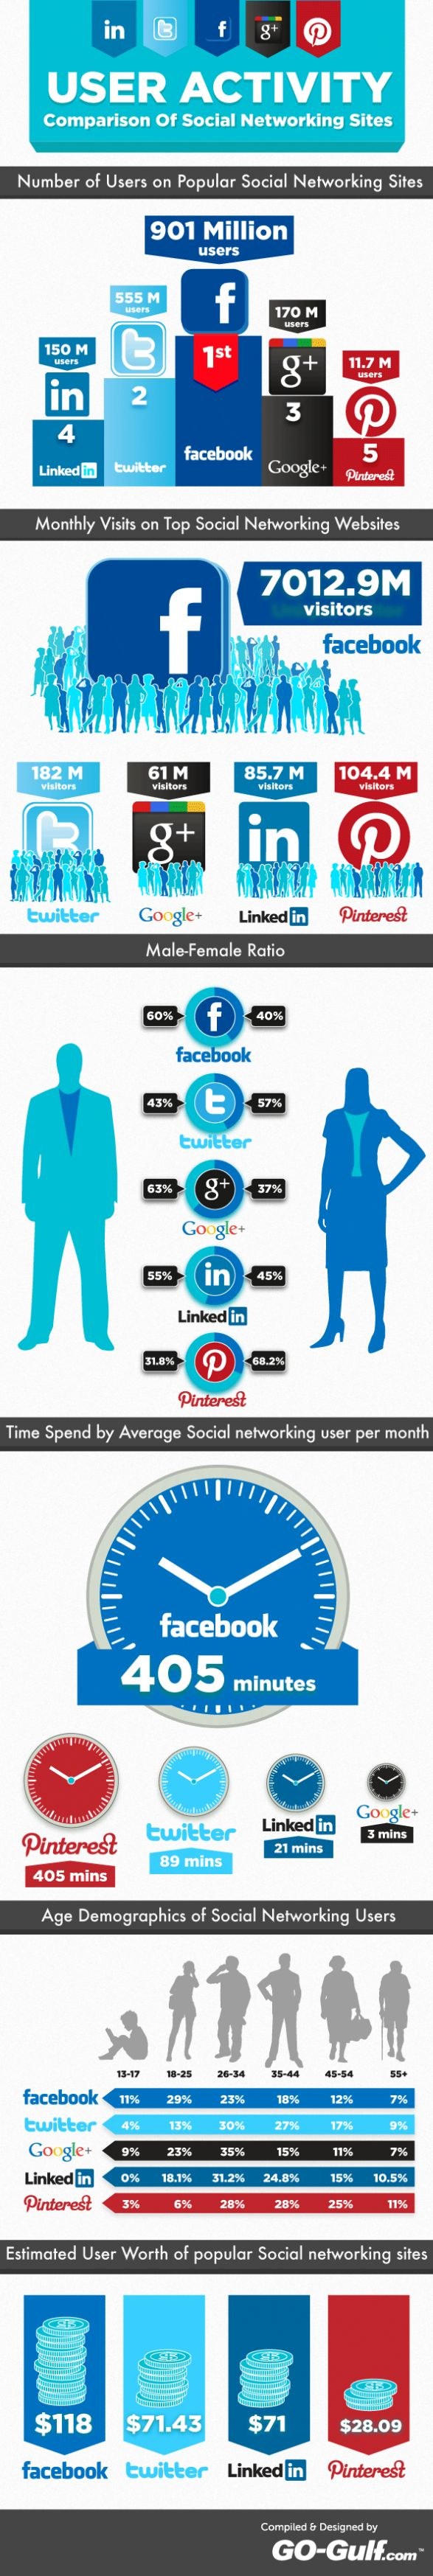 Interesting breakdown of users of the big 5 social channels - where do you spend most time?